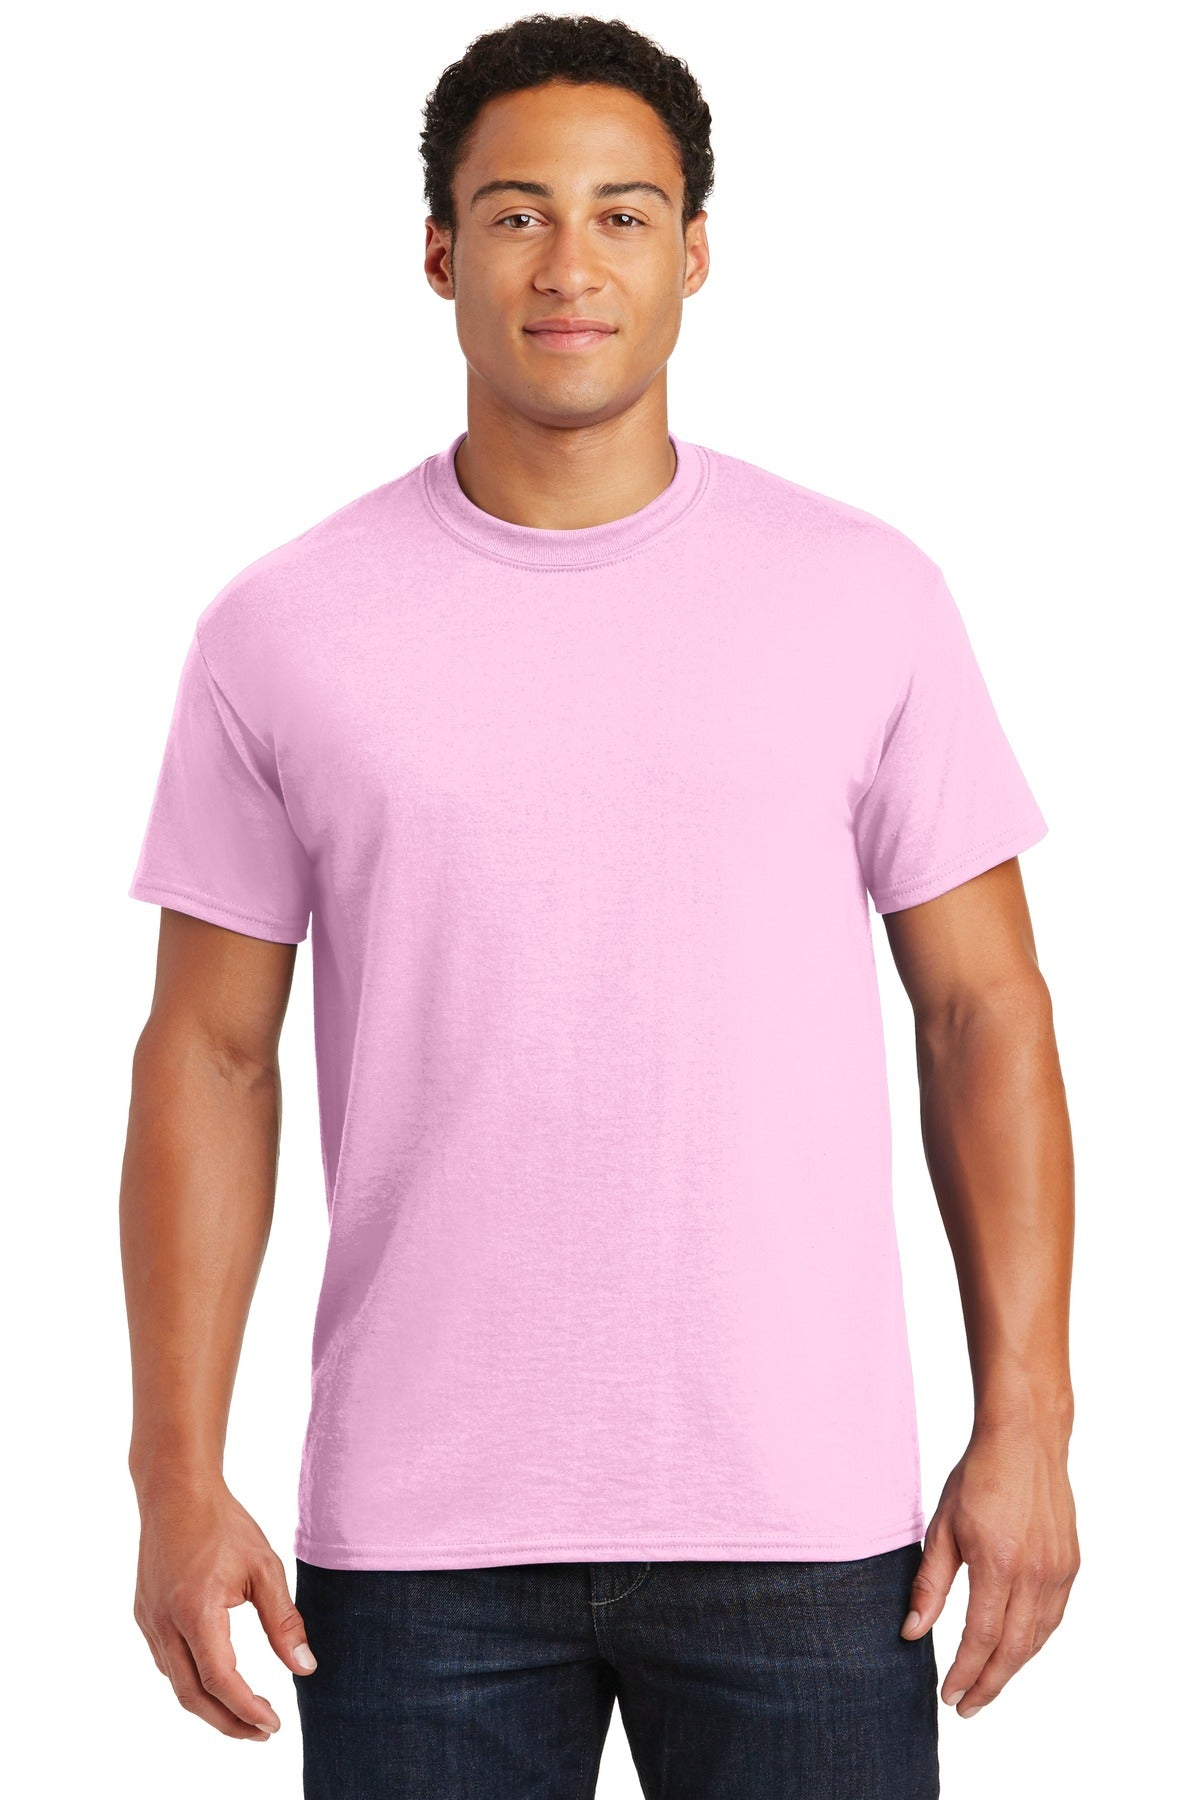 Light Pink Gildan DryBlend 50 Cotton/50 Poly T-Shirt.